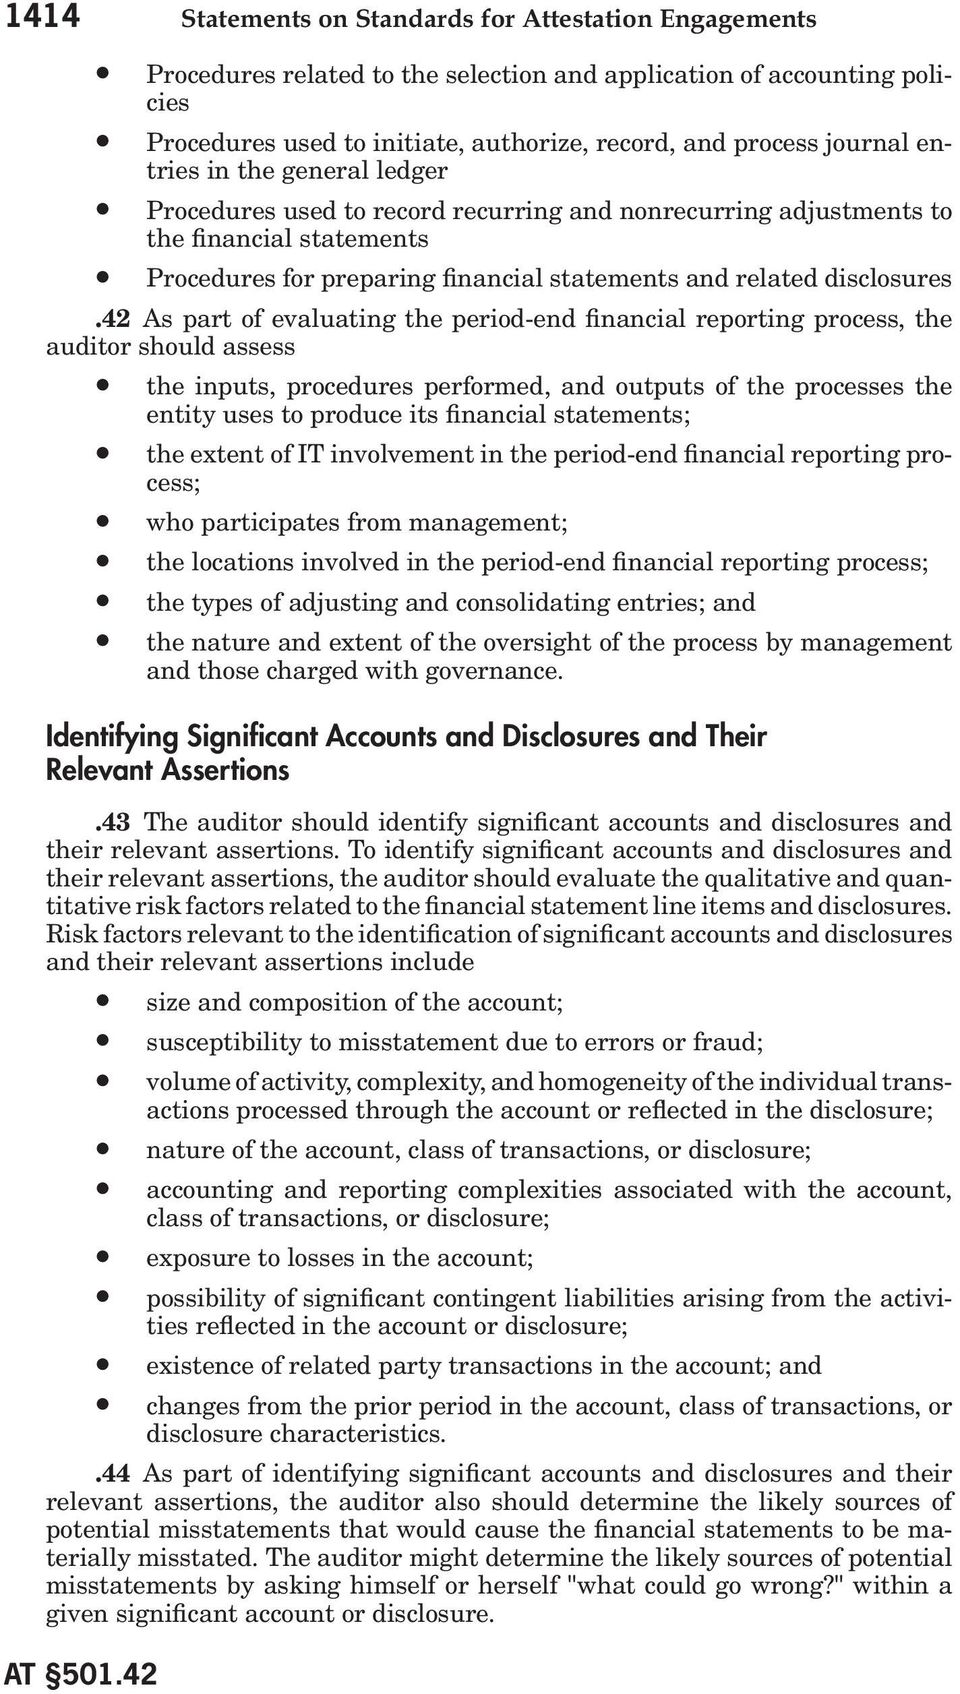 42 As part of evaluating the period-end financial reporting process, the auditor should assess the inputs, procedures performed, and outputs of the processes the entity uses to produce its financial